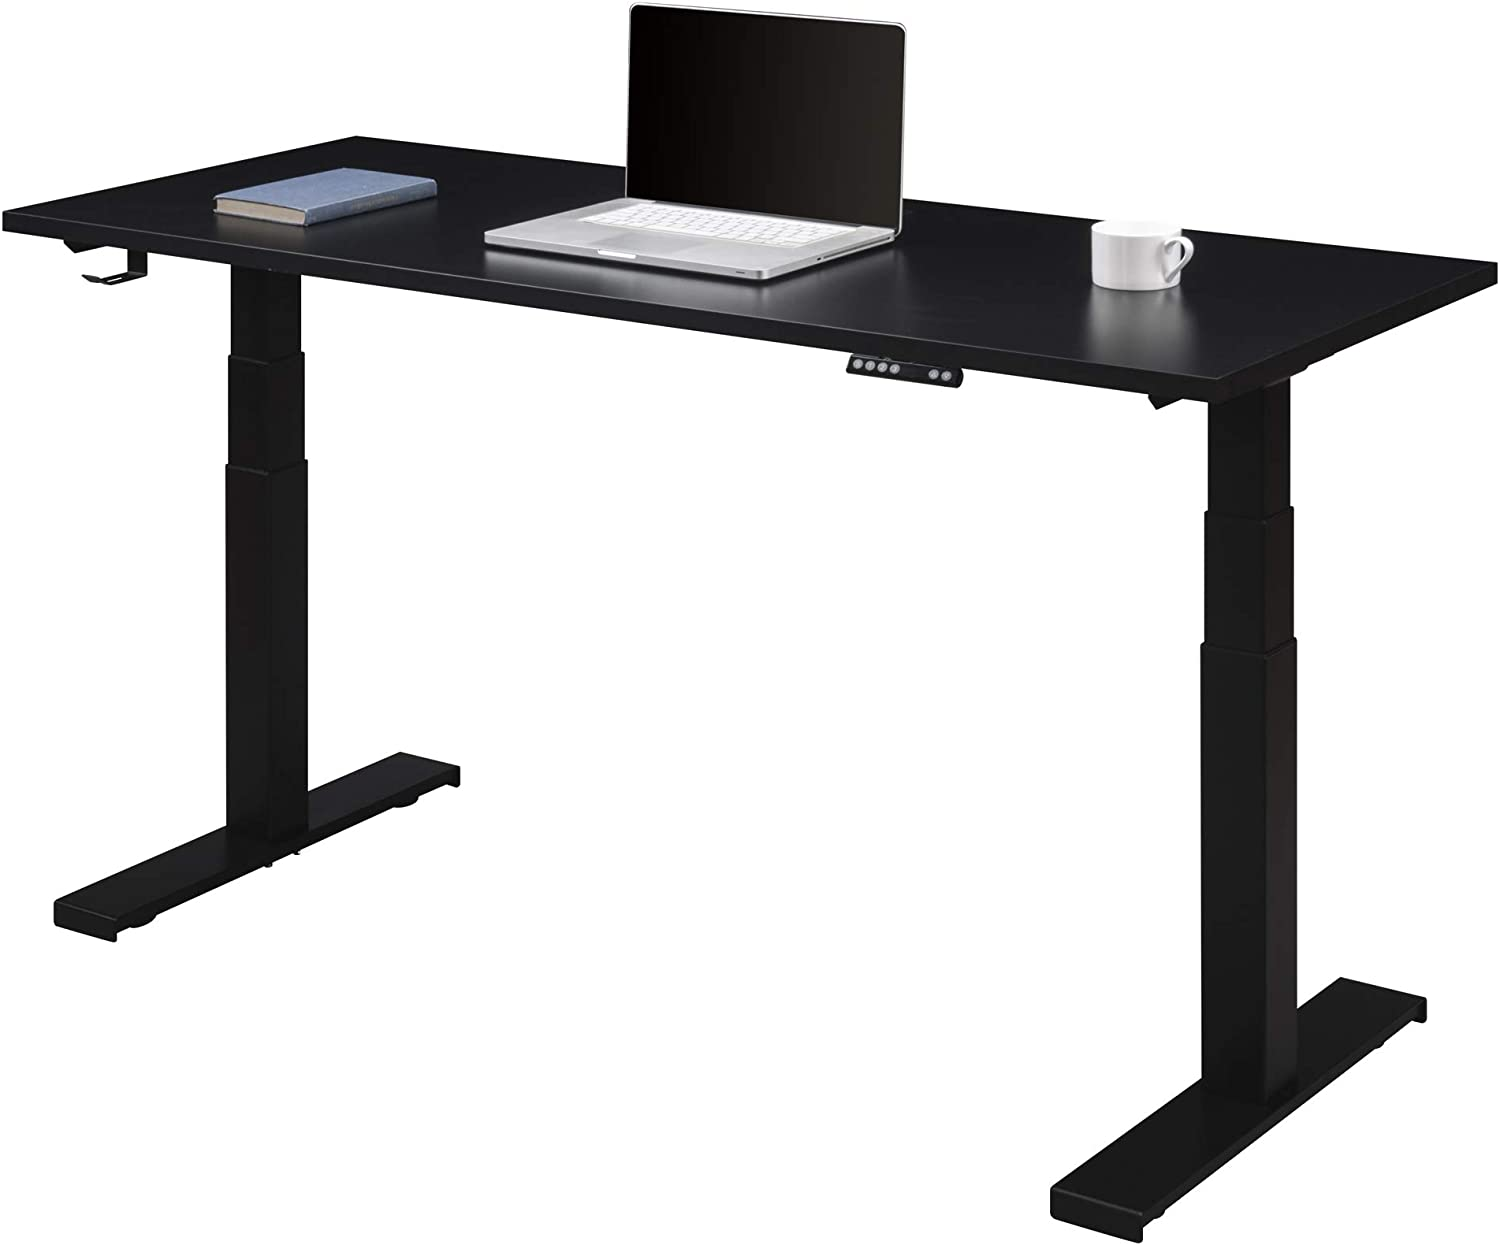 Electric Height Adjustable Max 65% OFF A surprise price is realized Standing Desk Office Workstatio Home